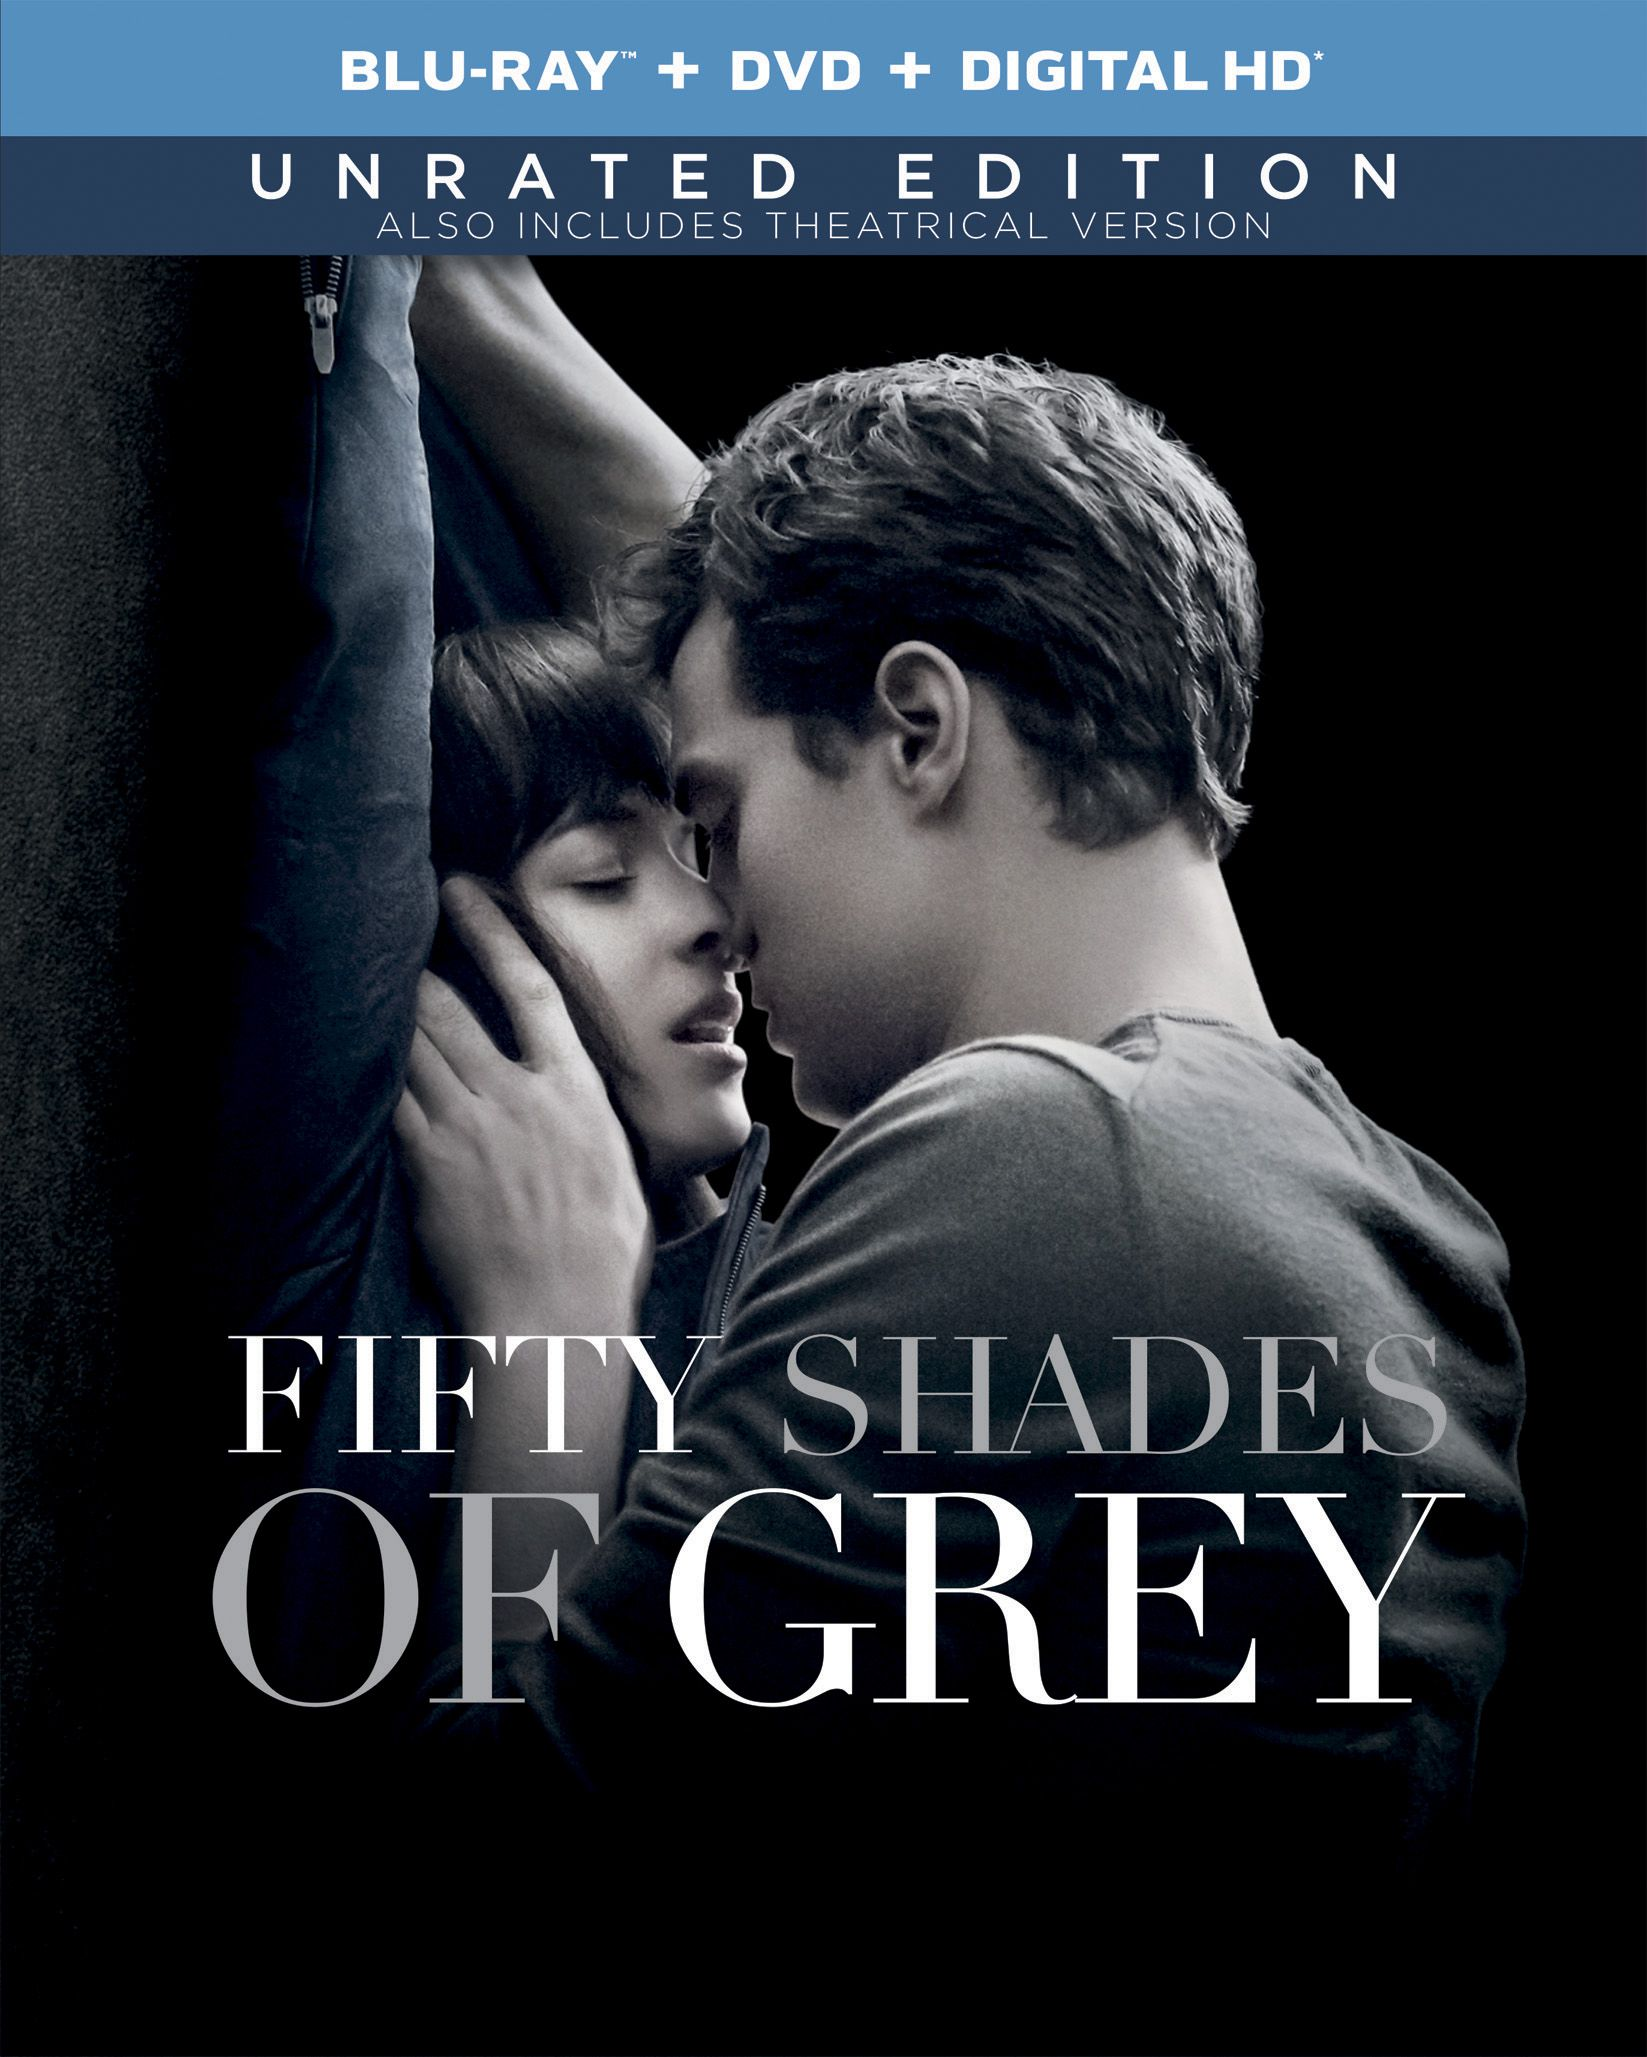 fifty shades of grey unrated edition with alternate ending on digital hd friday may 1 blu ray. Black Bedroom Furniture Sets. Home Design Ideas